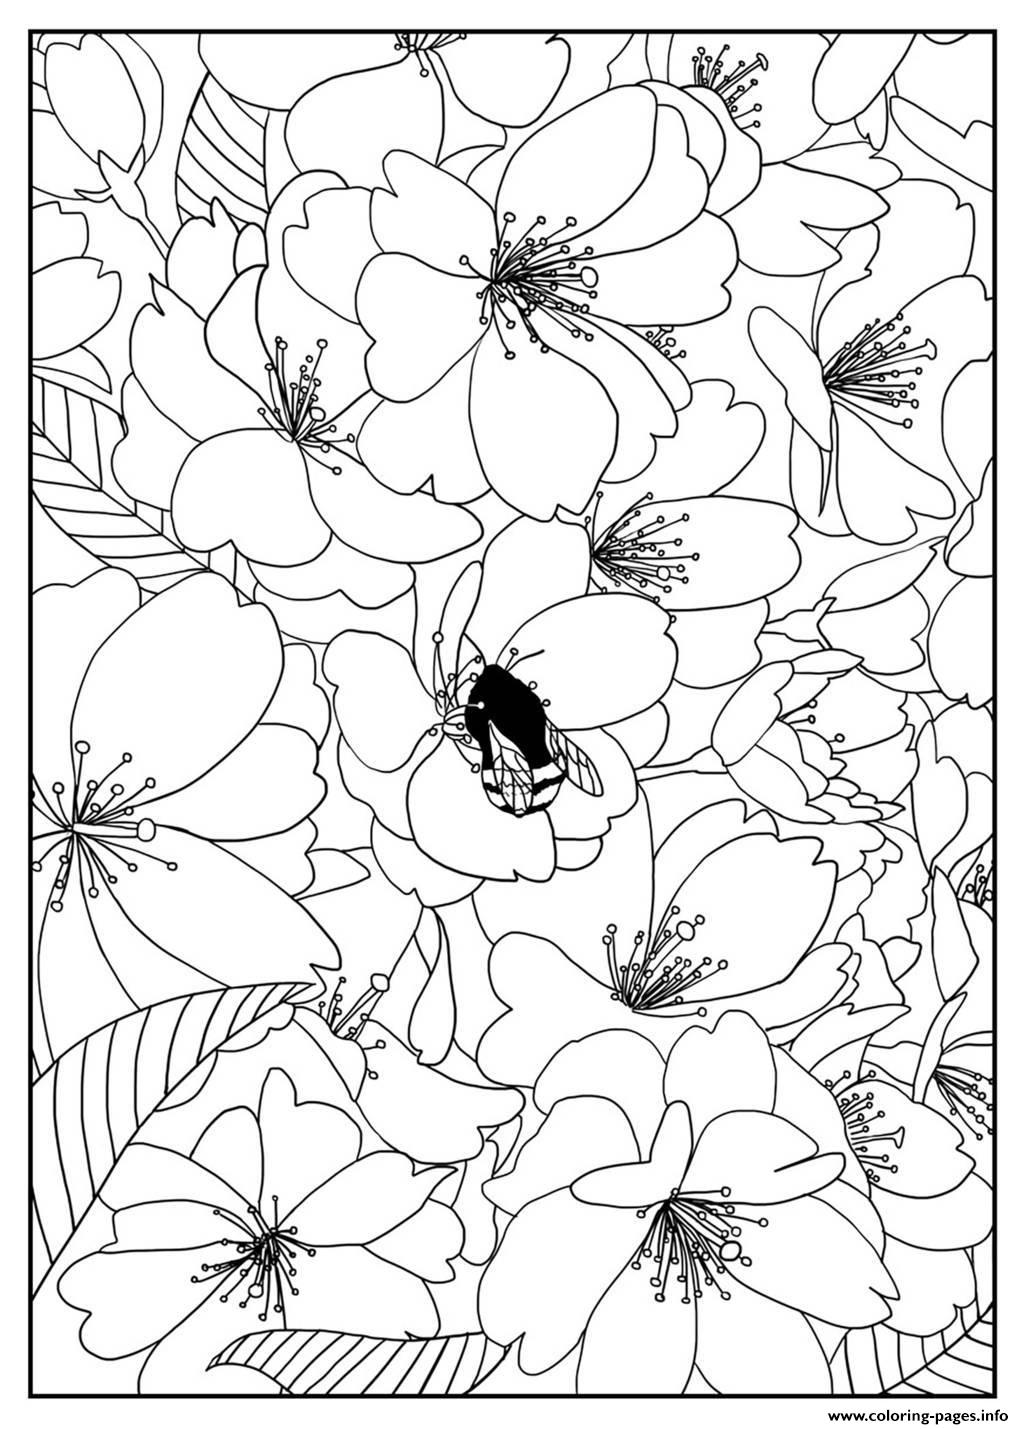 Cherry Tree Match Coloring Page | crayola.com | 1429x1024